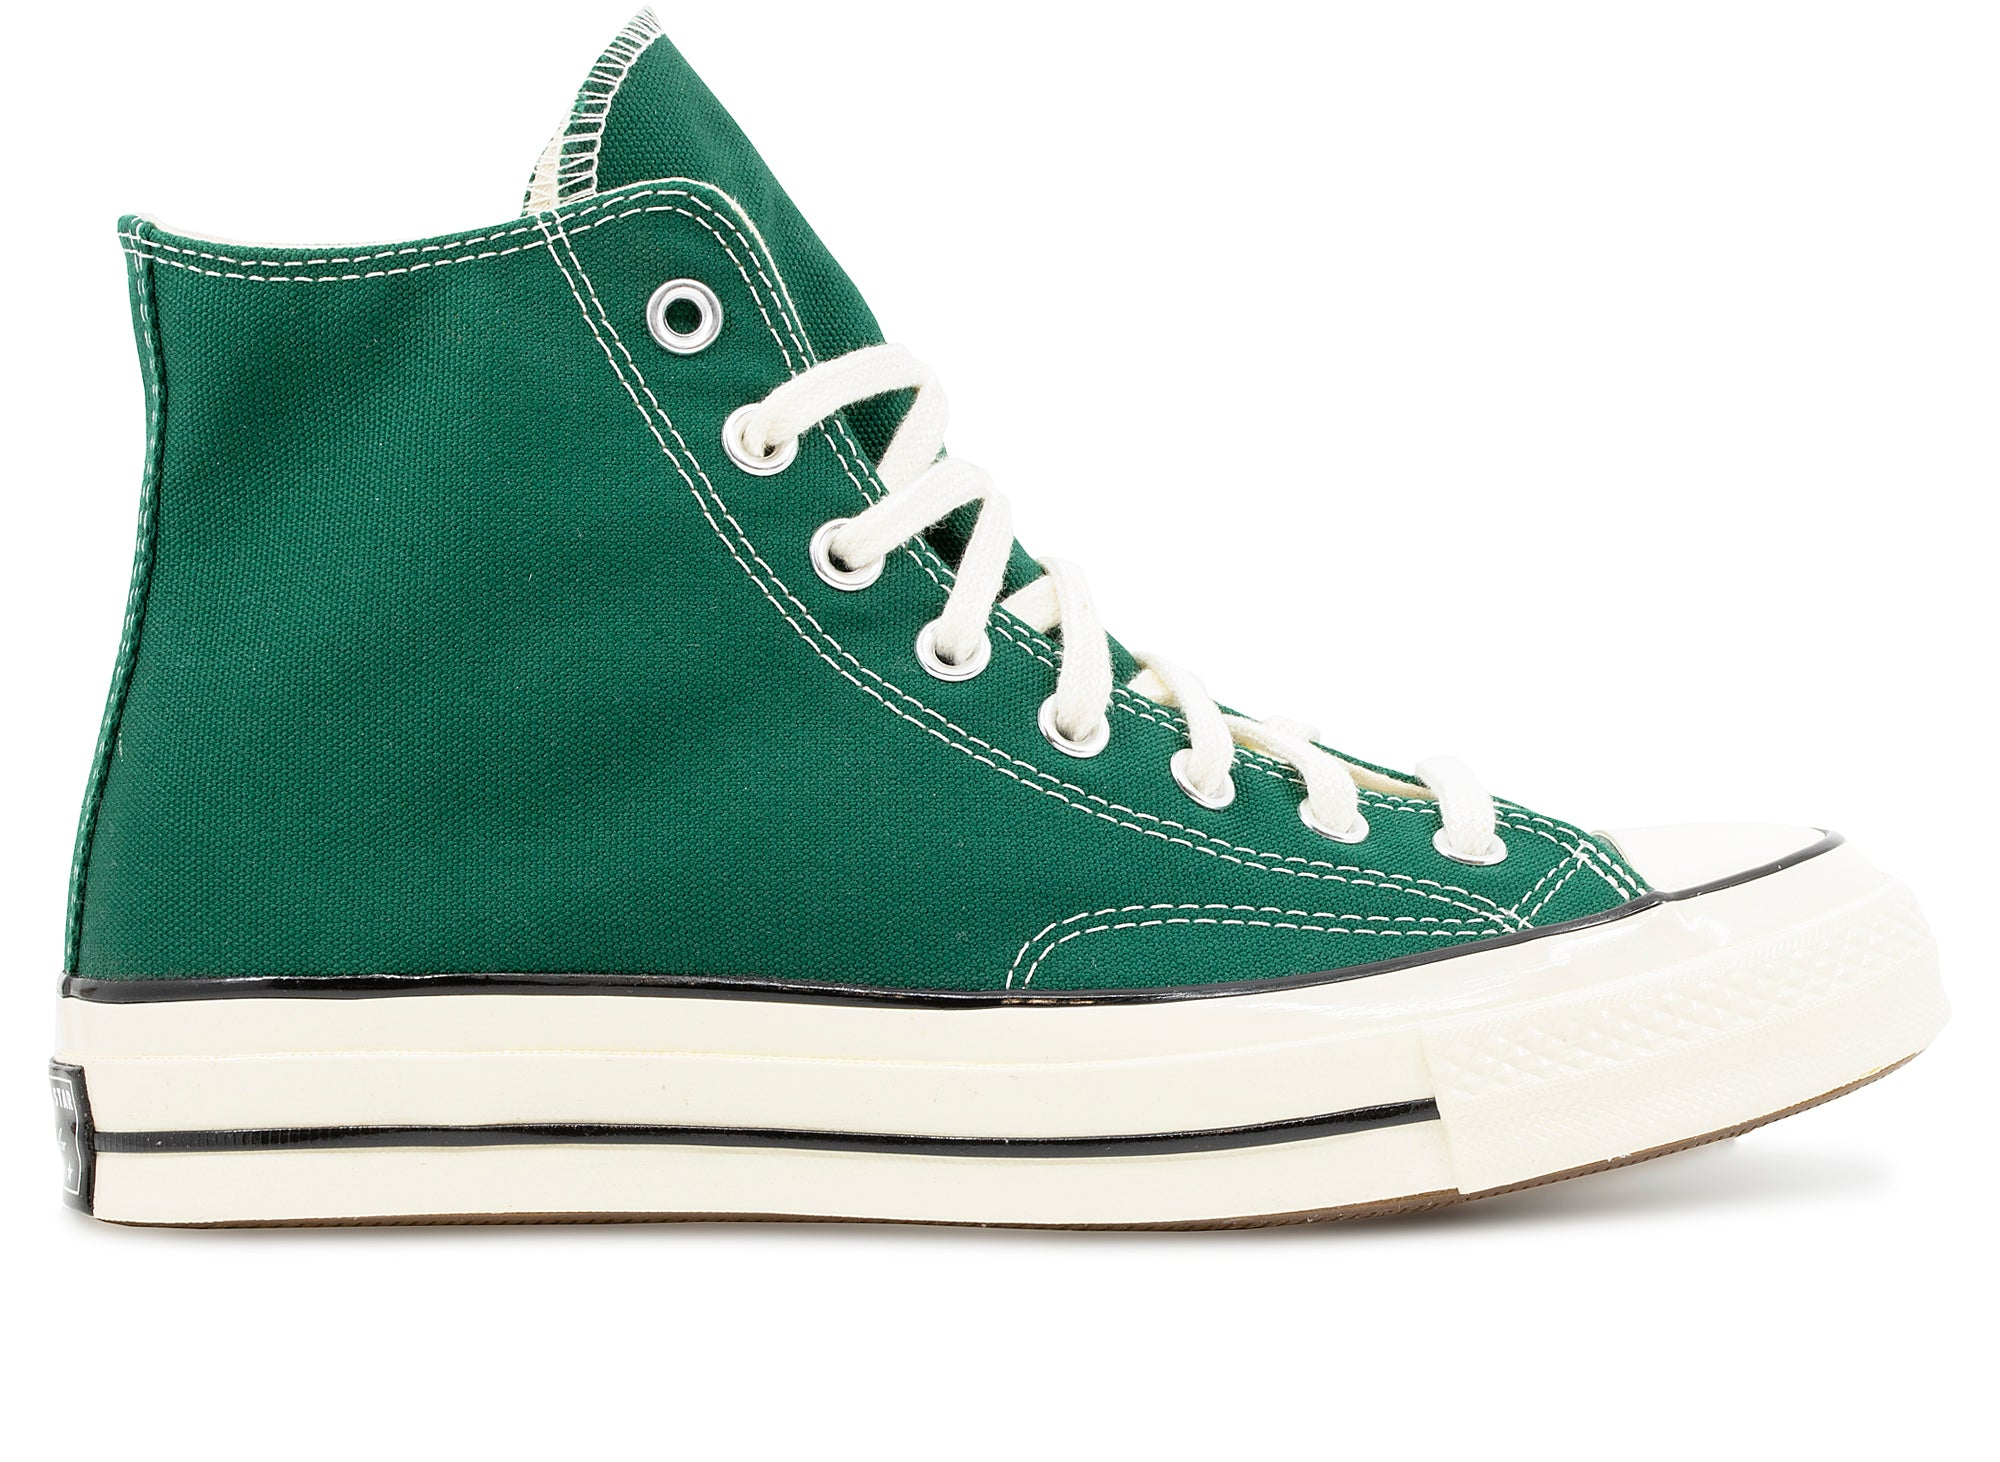 Converse Chuck 70 Hi in Green